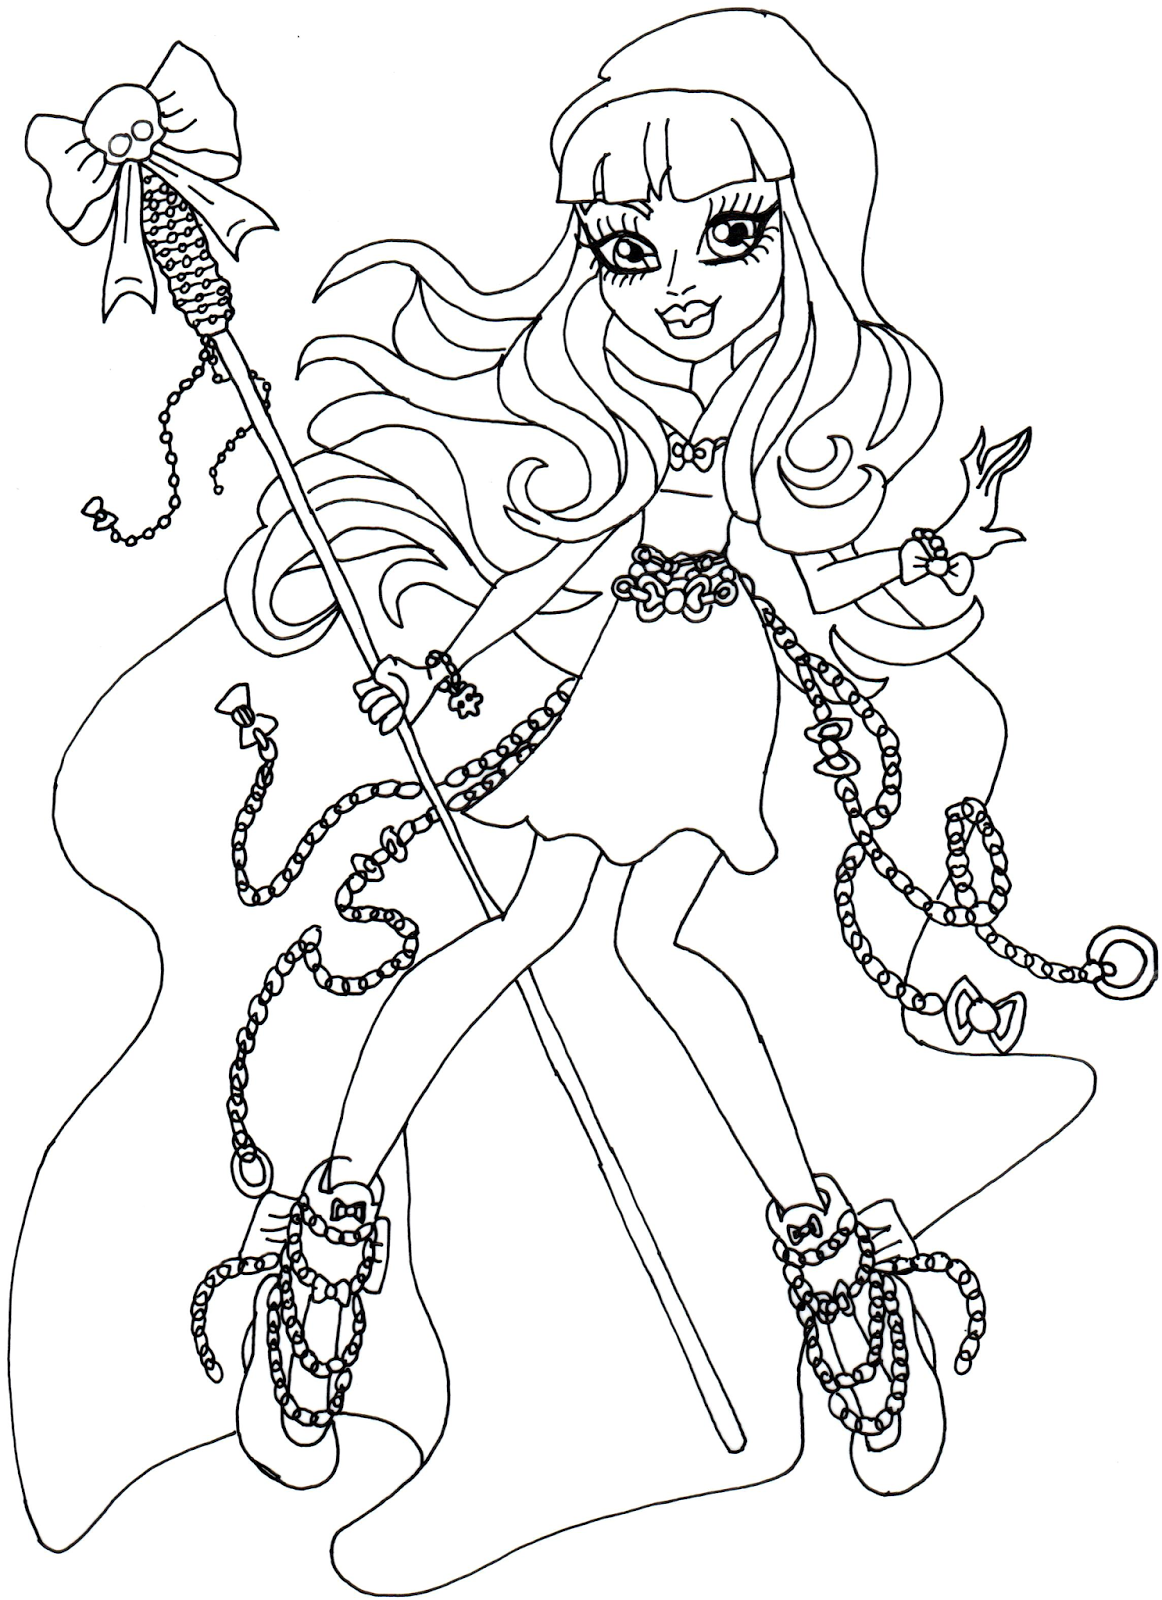 Free printable monster high coloring pages river styxx for Monster high free coloring pages